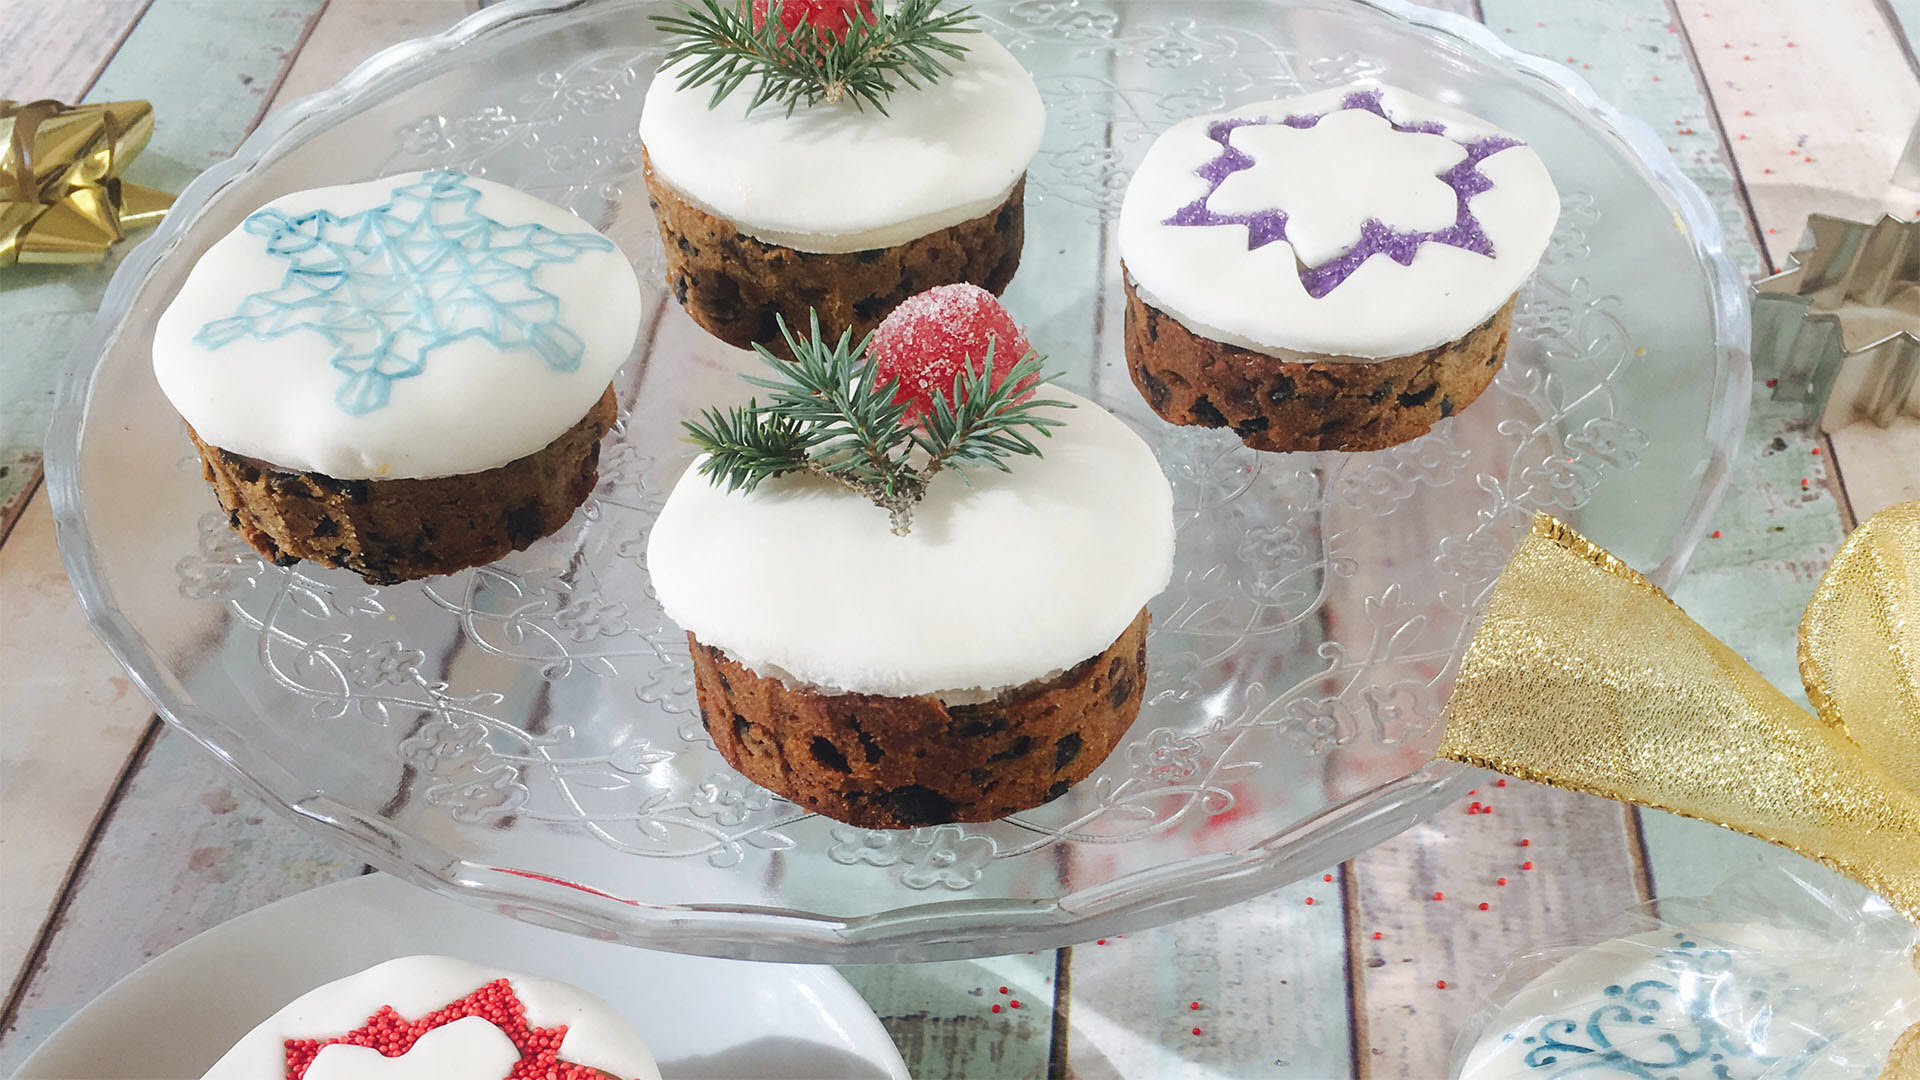 You may associate fruitcakes with that one neighbor, coworker, or aunt who never failed to deliver one to your door. Gifting Mini Christmas Cakes would be a fun, unexpected alternative to a standard fruitcake.